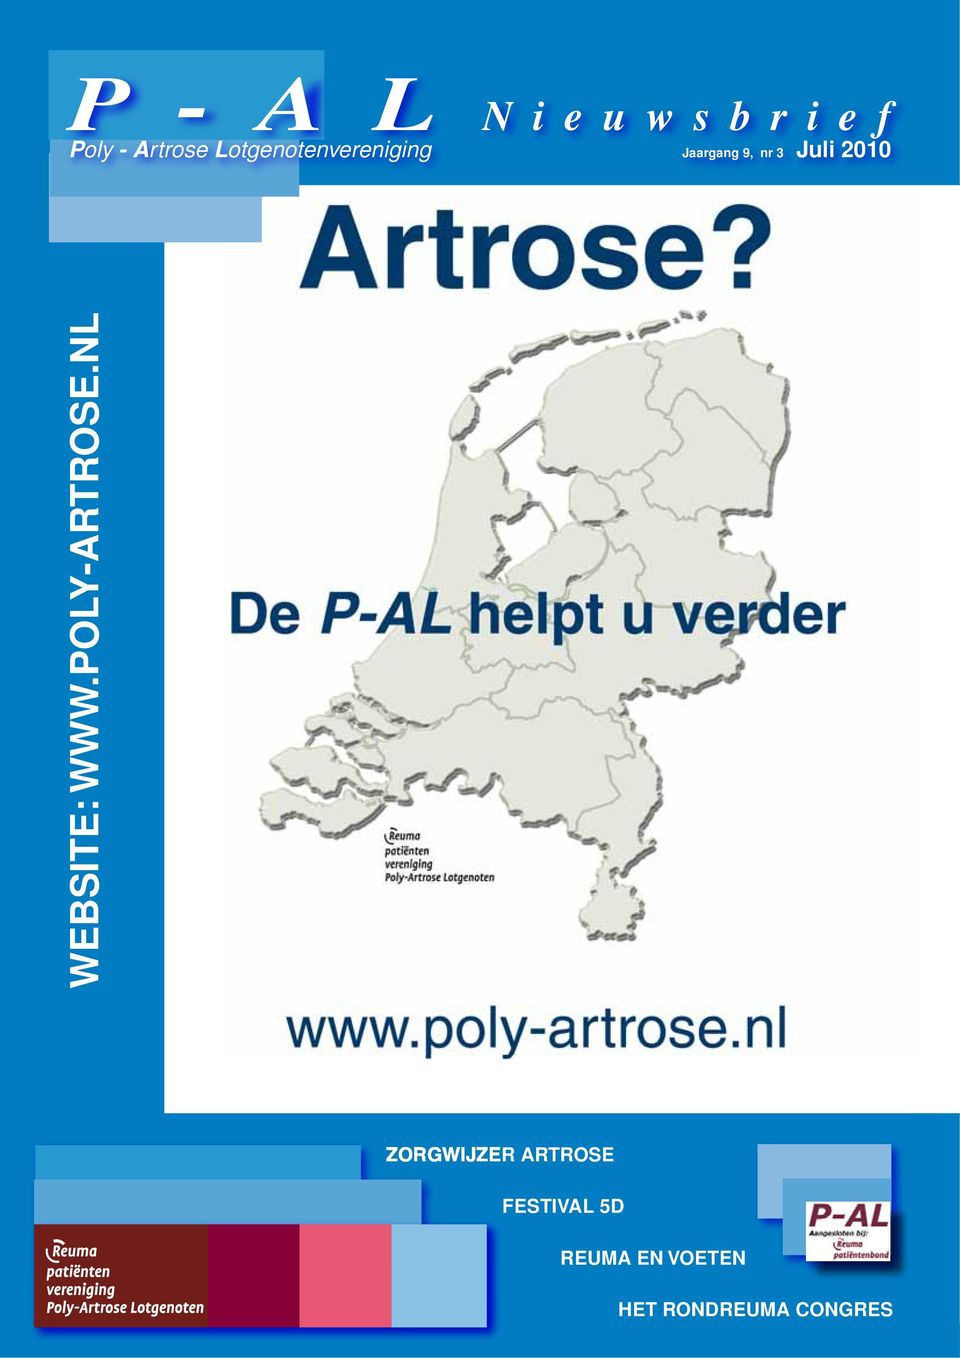 WEBSITE: WWW.POLY-ARTROSE.